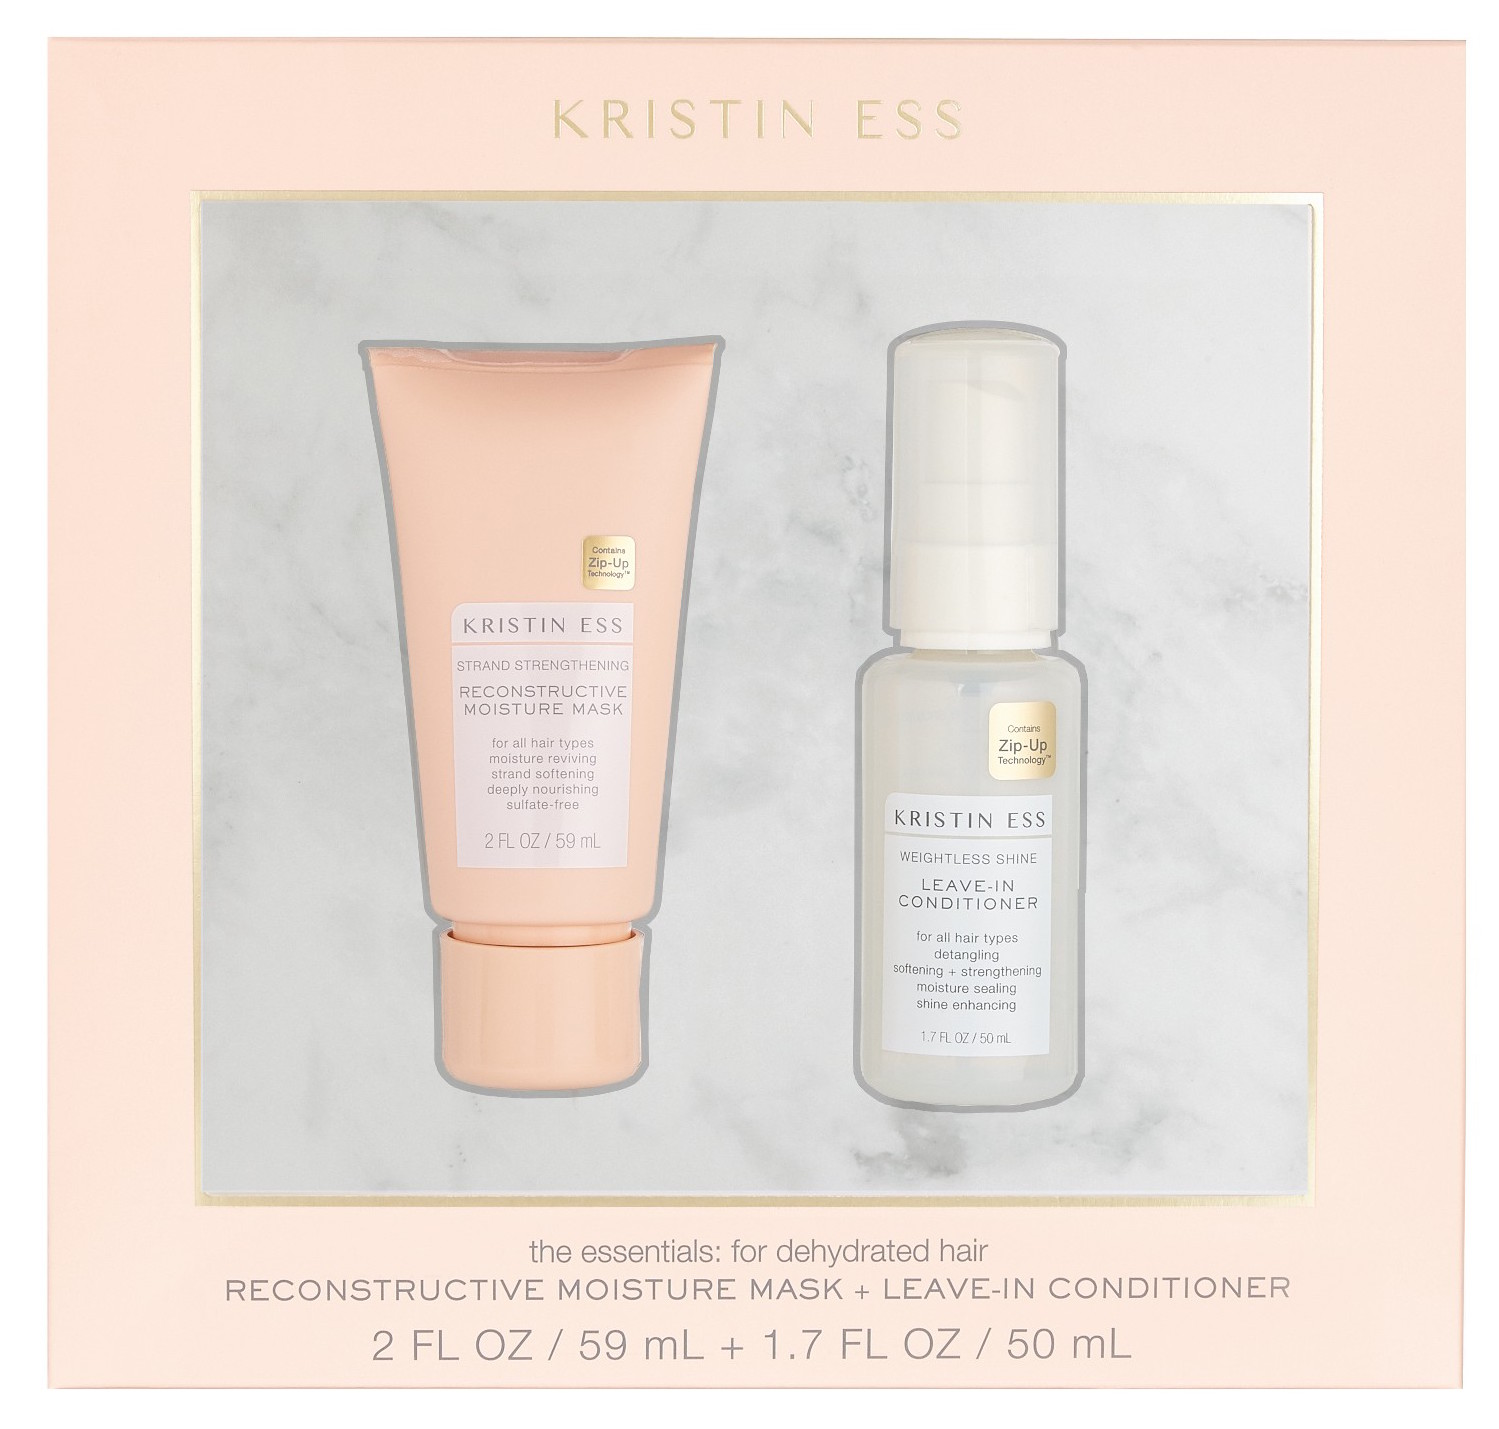 25 Last Minute Beauty Holiday Gifts To Pick Up At Target Hellogiggles Kit Metal Polish Cream 50 Gr 11kristin Ess Reconstructive Moisture Mask Leave In Conditioner Set 10